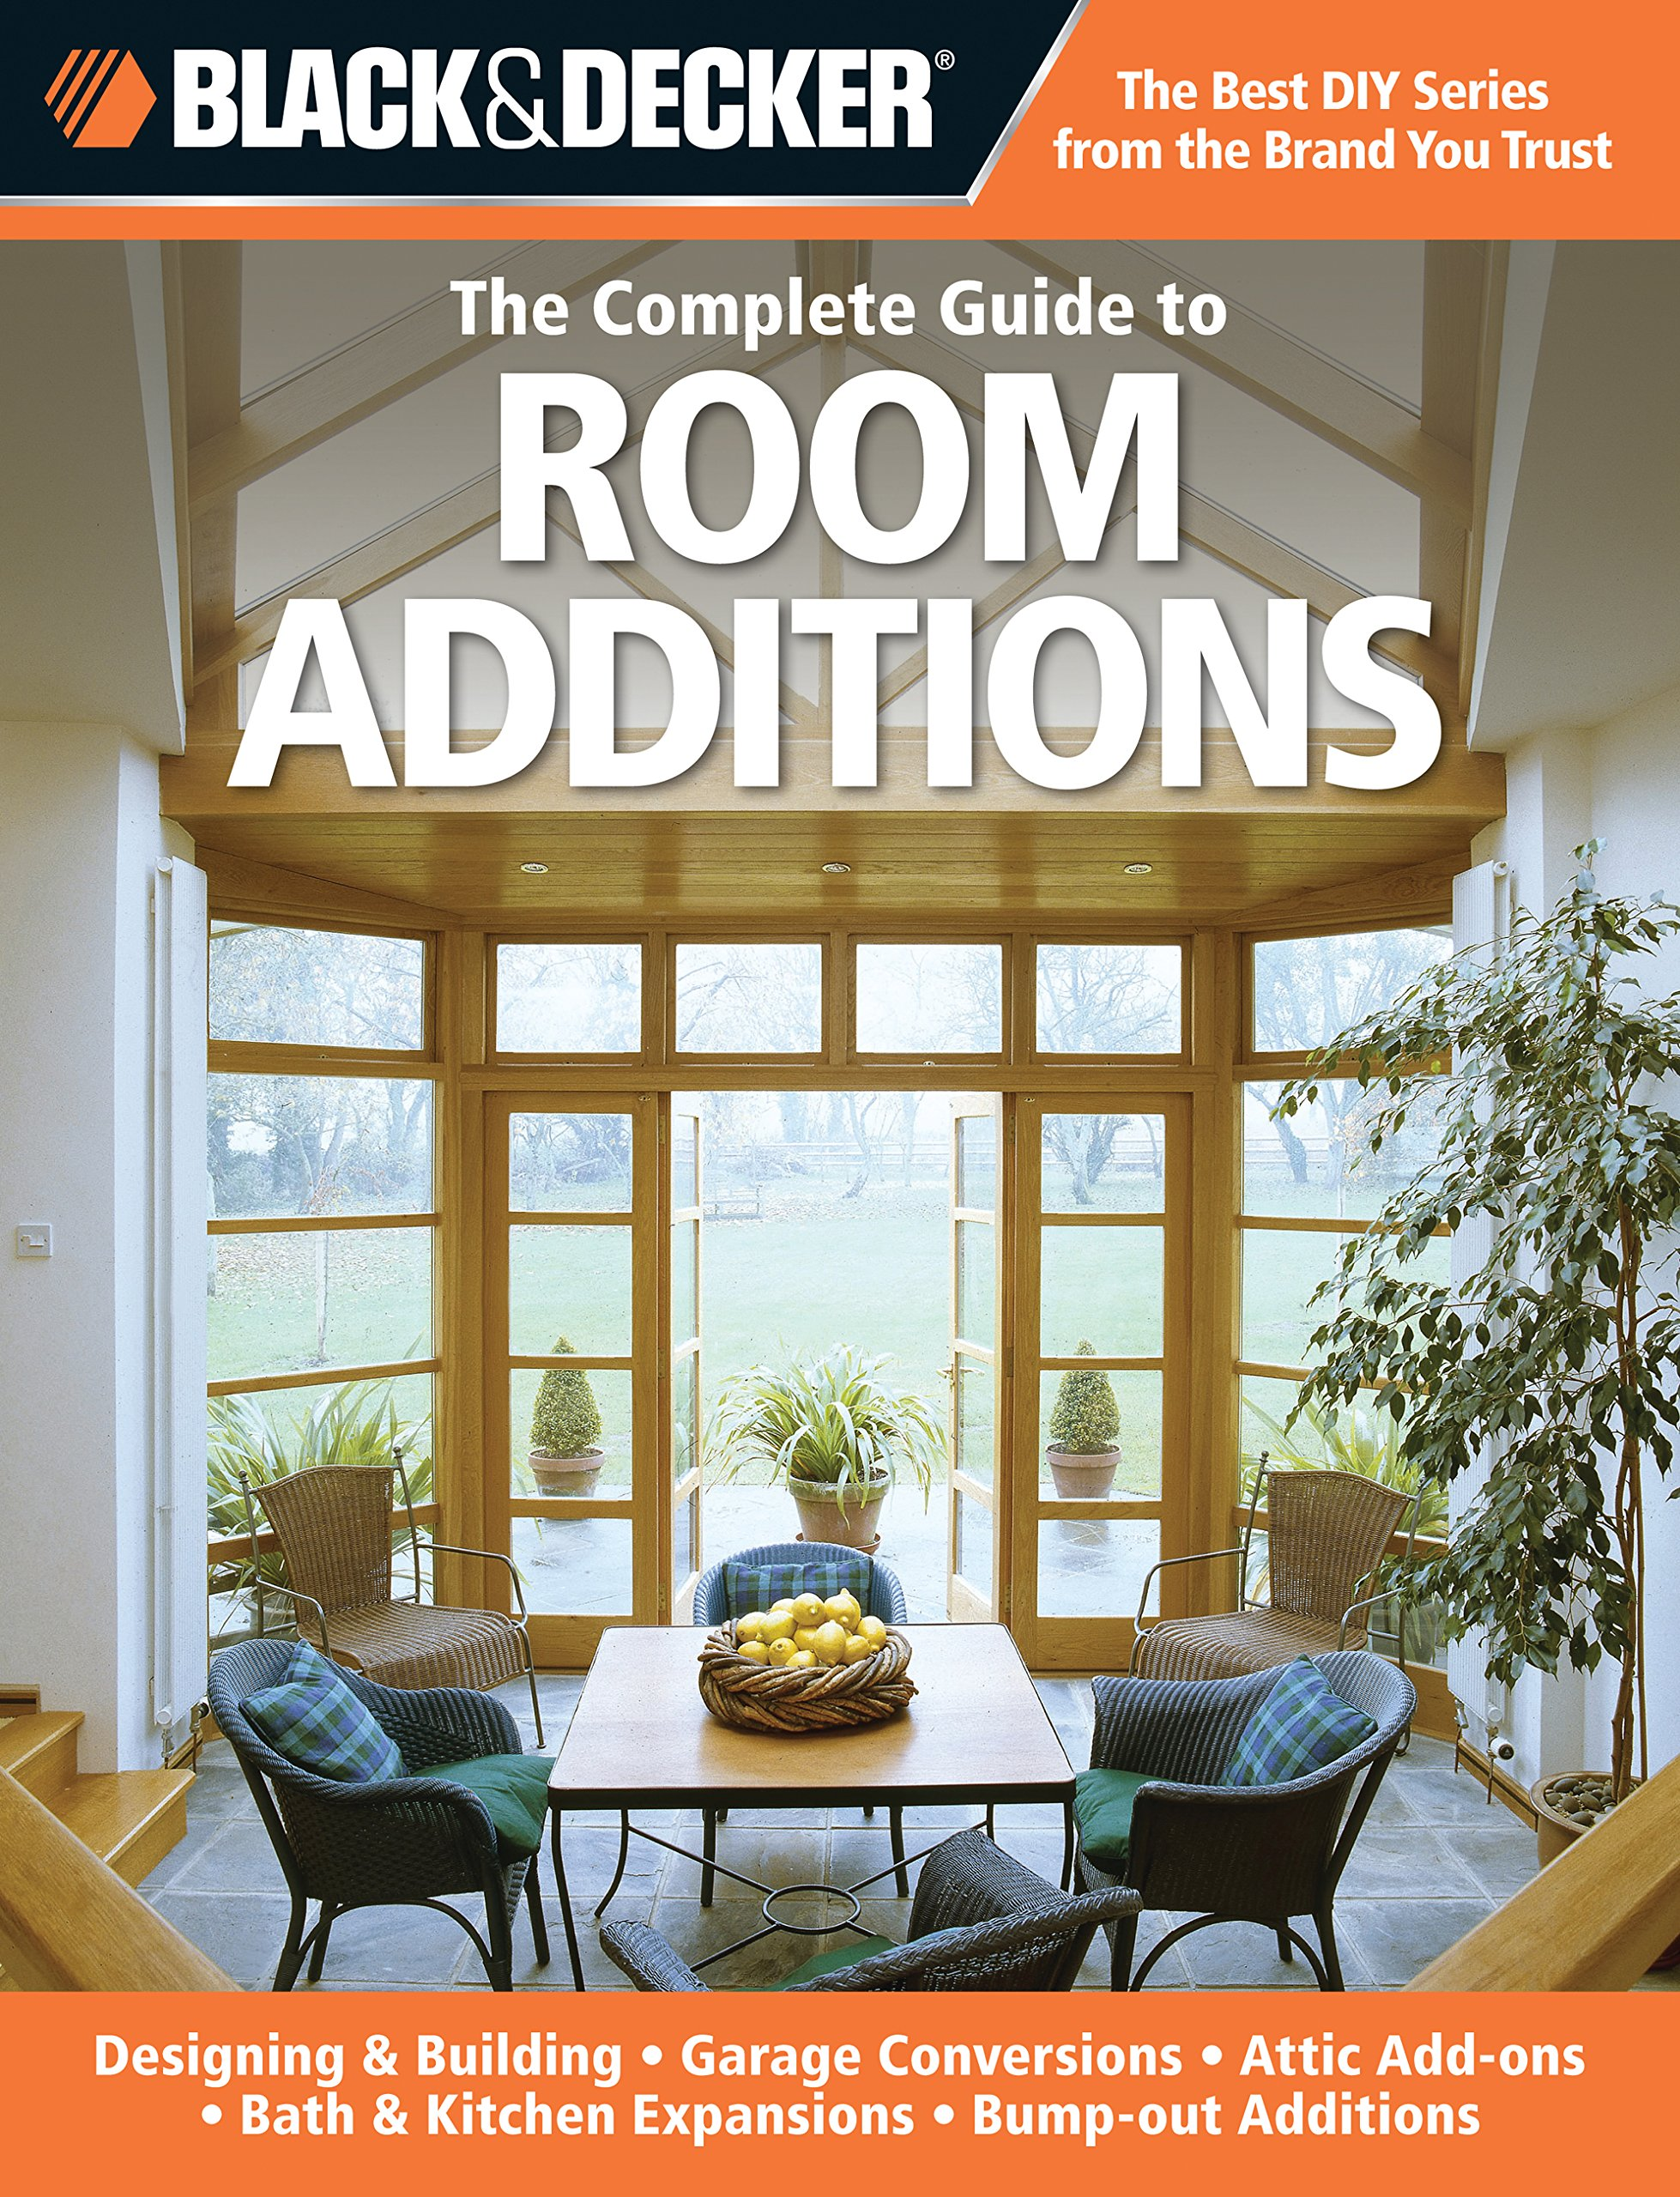 The Complete Guide To Room Additions Designing Building Garage Conversions Attic Add Ons Bath Kitchen Expansions Bump Out Additions Black Decker Complete Guide Peterson Chris 9781589234826 Amazon Com Books